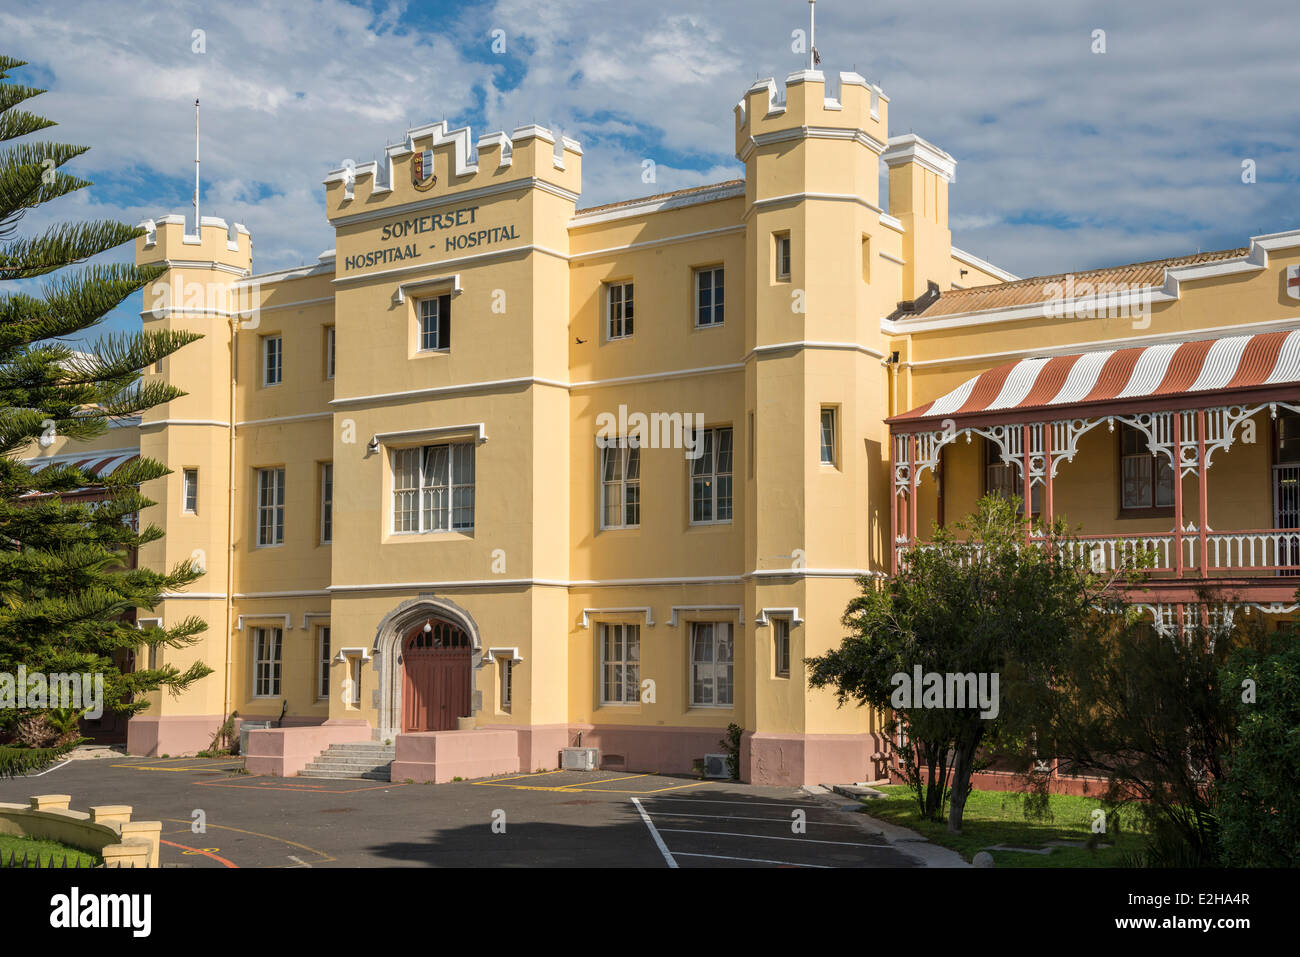 Somerset Hospital, Cape Town, Western Cape, South Africa - Stock Image